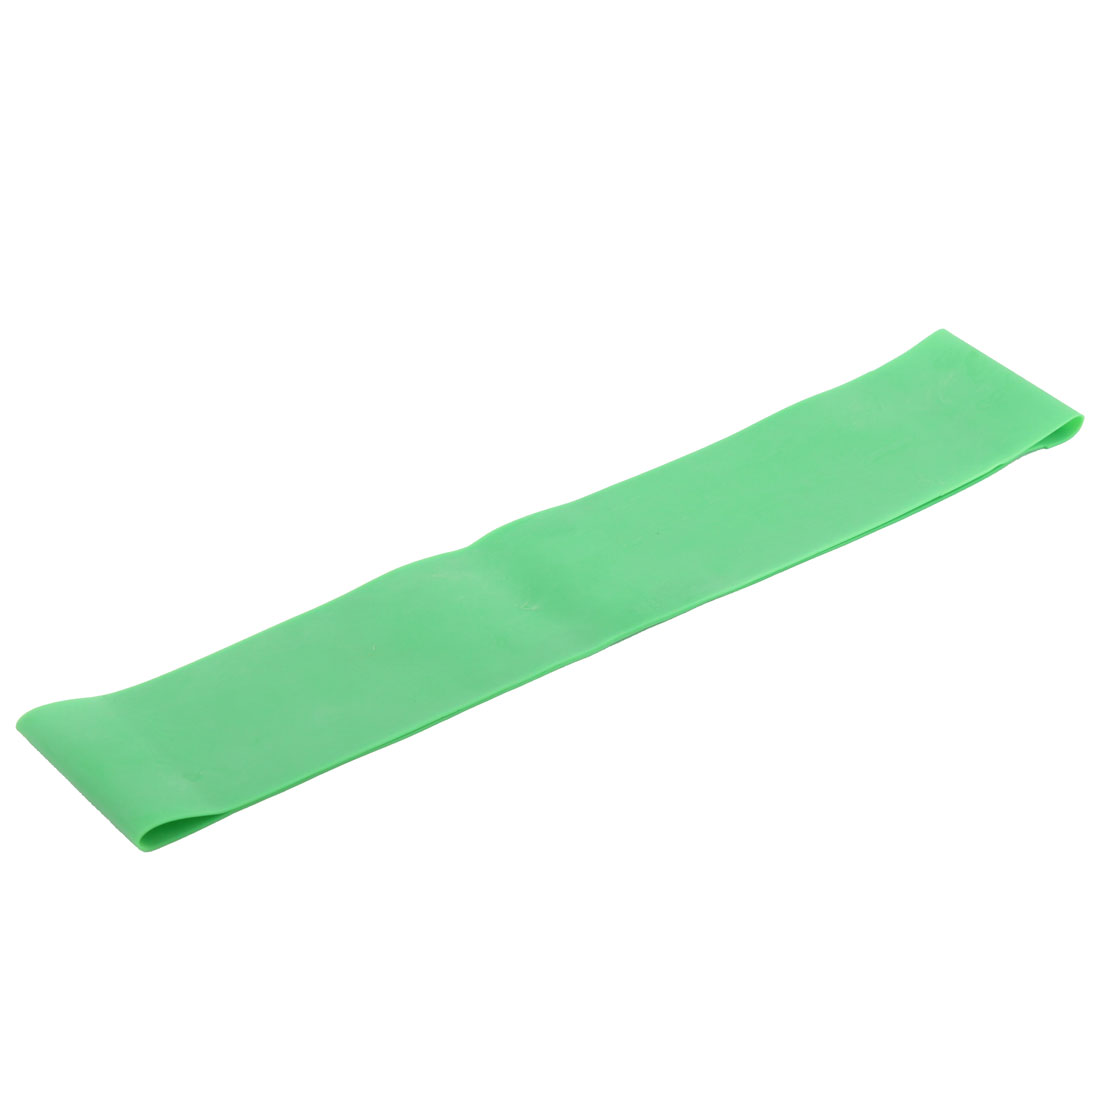 Rubber Yoga Fitness Training Sport Exercise Resistance Bands Green 2 Pcs